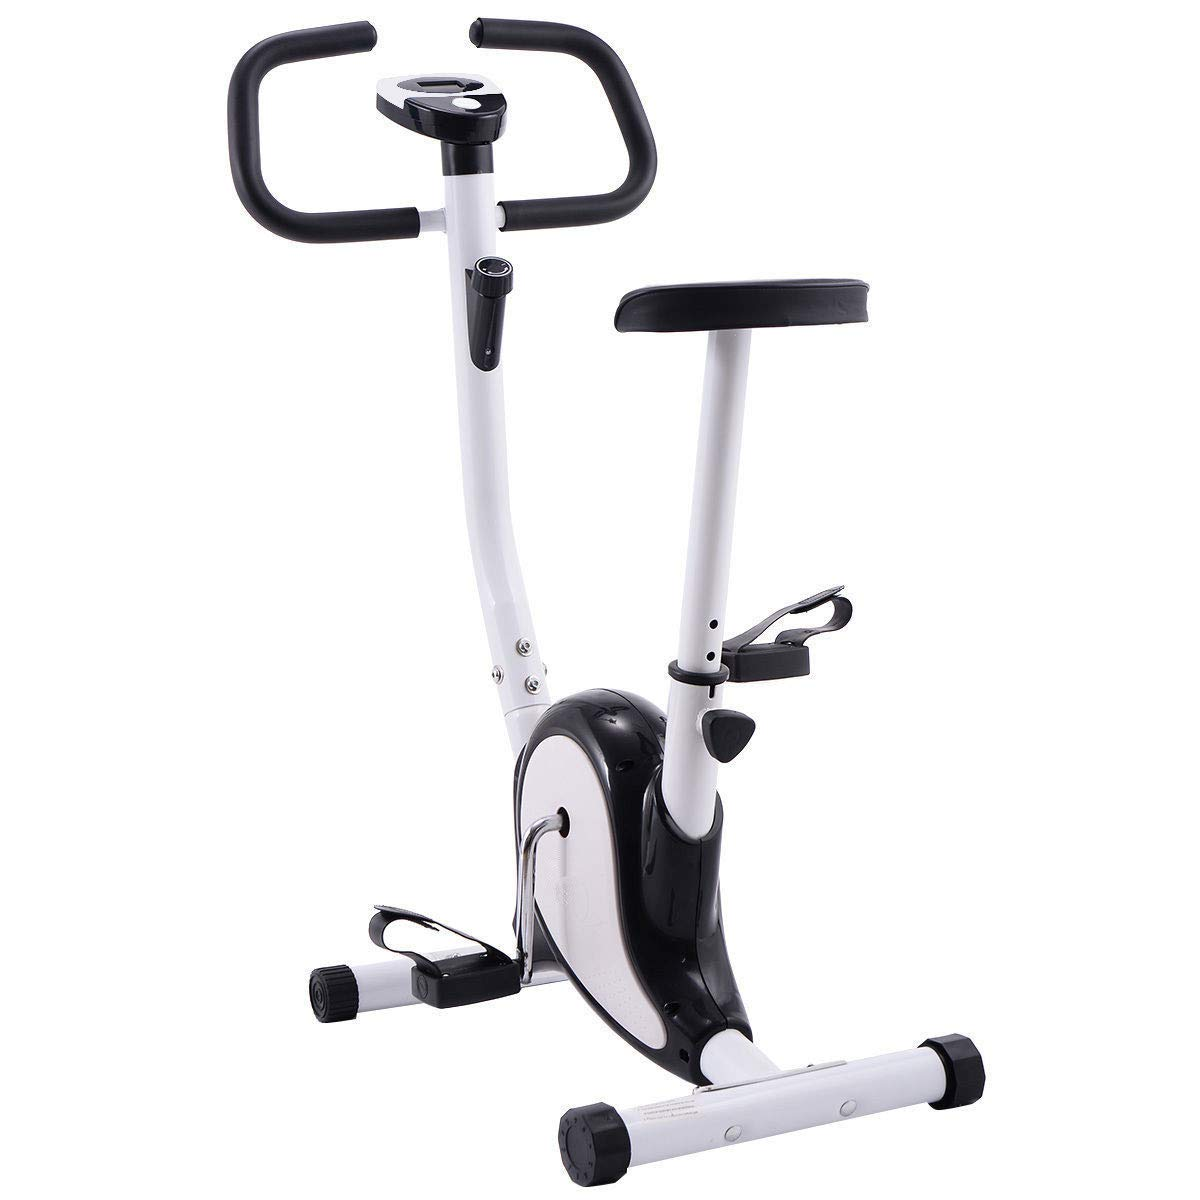 c6e13496077 Get Quotations · oldzon Exercise Bike Stationary Cycling Fitness Cardio  Aerobic Equipment Gym White and Black with Ebook